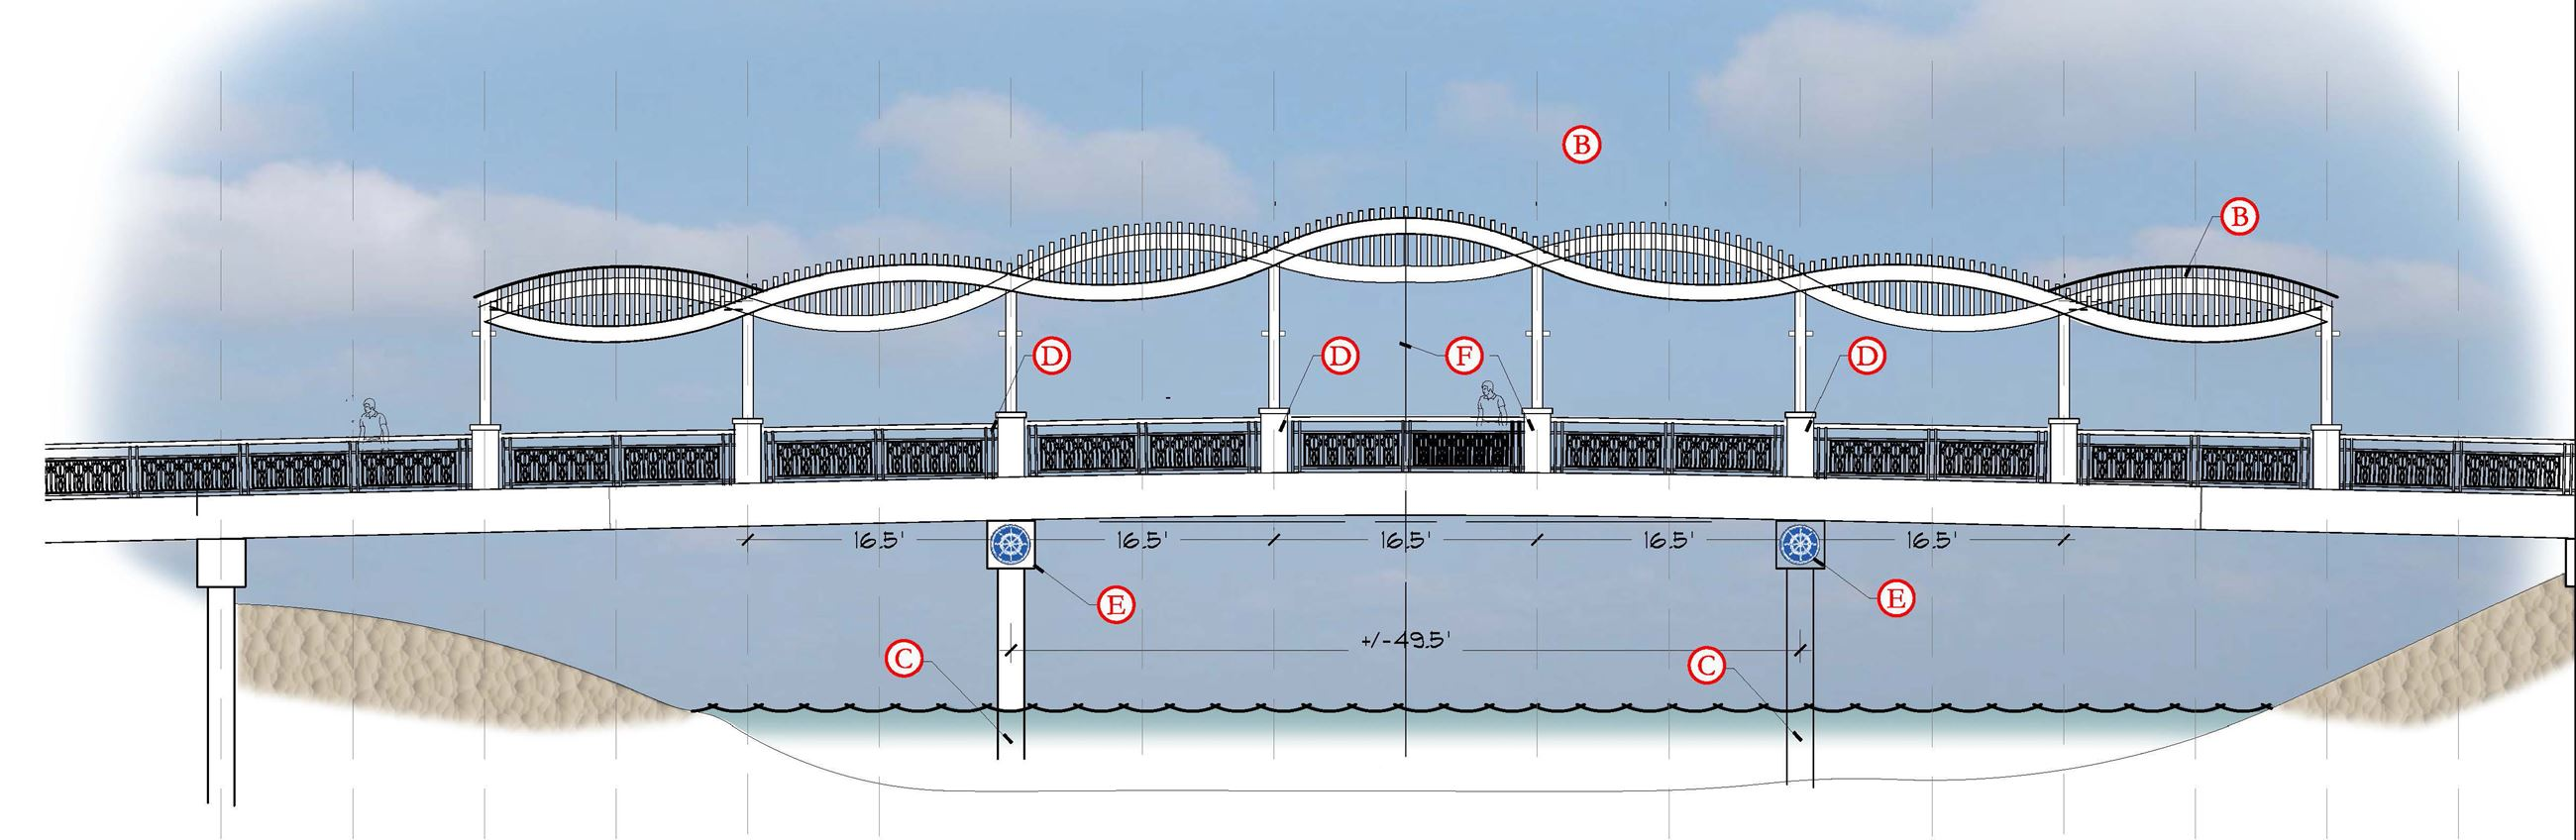 Proposed Prosperity Farms Road bridge rendering with wave-shaped trellis